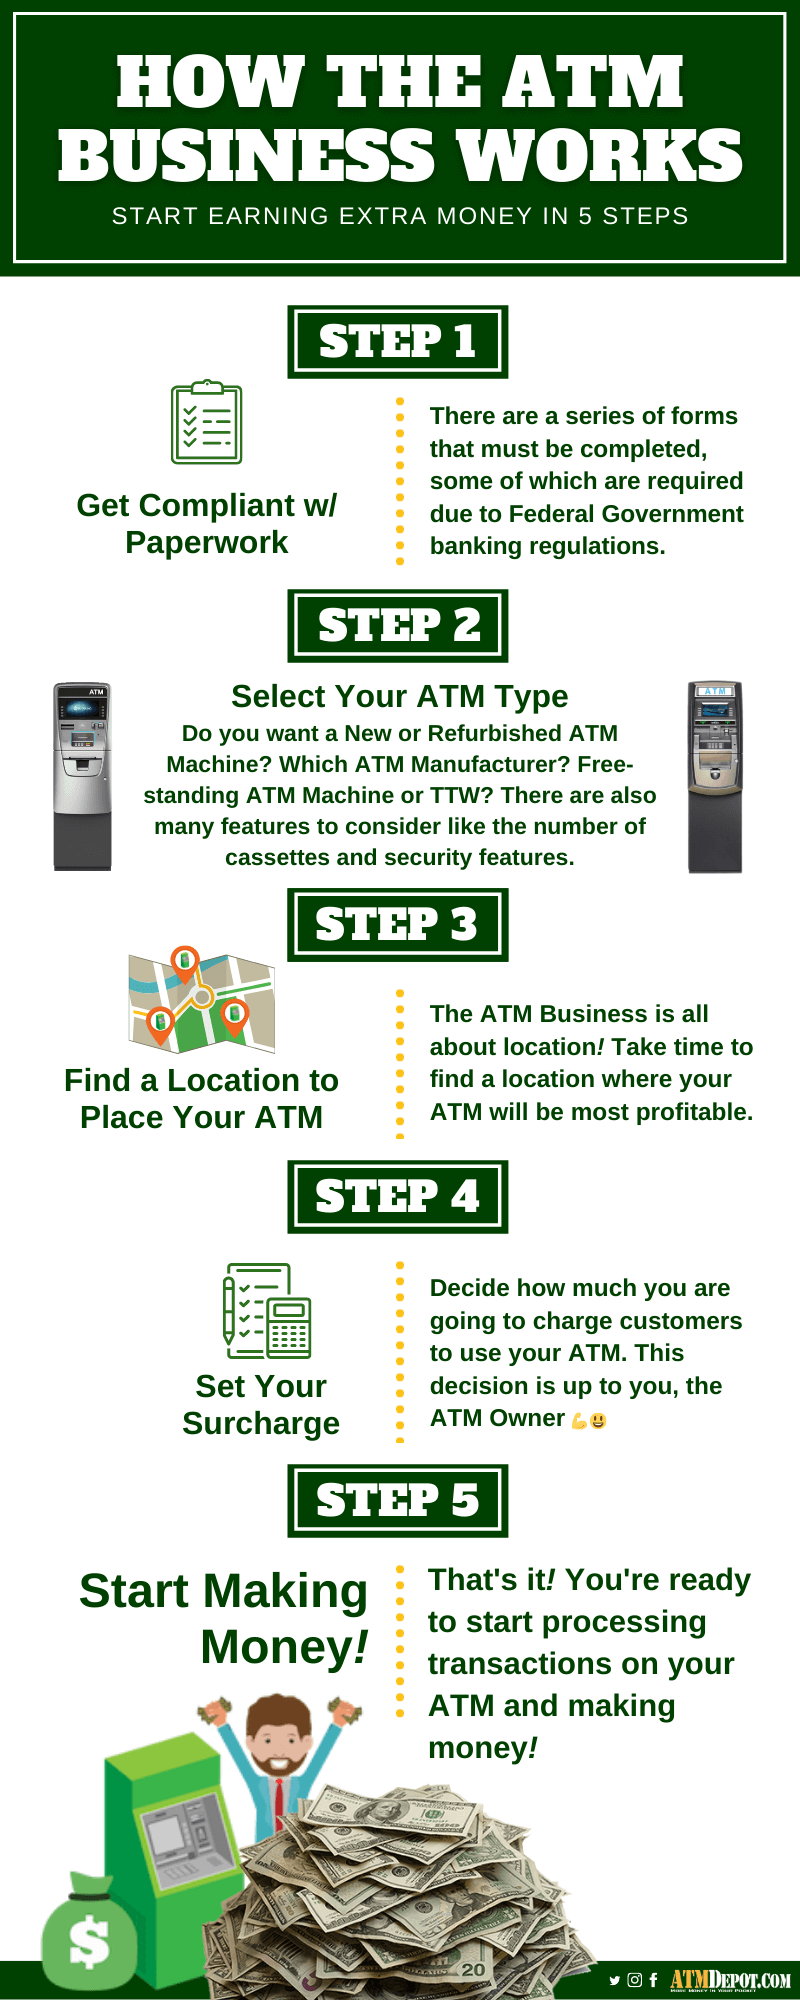 How to Start an ATM Business